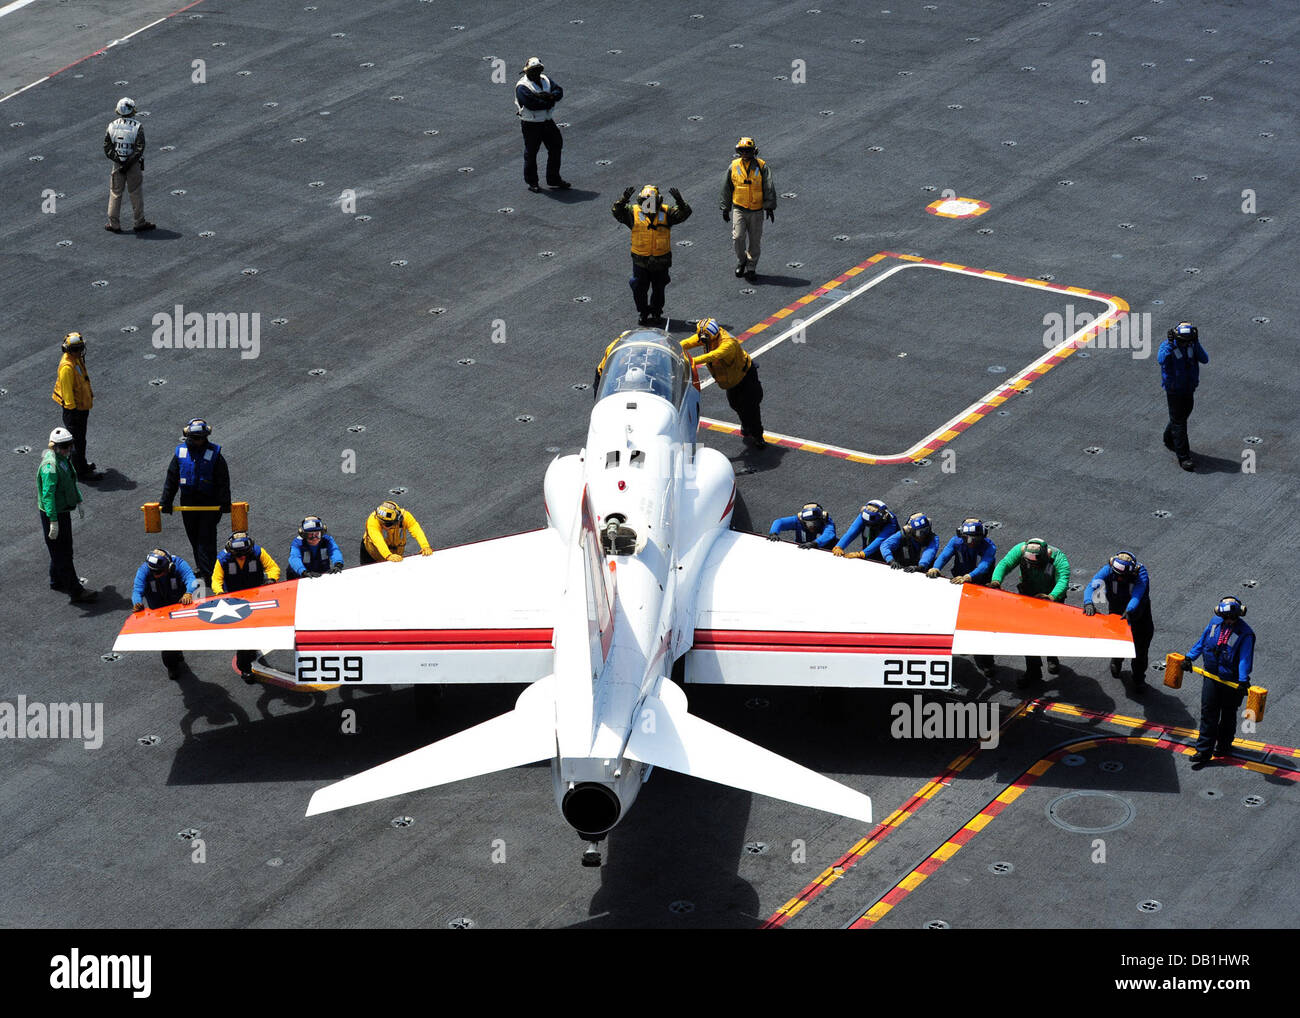 Sailors push a T-45C Goshawk training aircraft from the Redhawks of Training Wing 2 into a maneuvering position - Stock Image